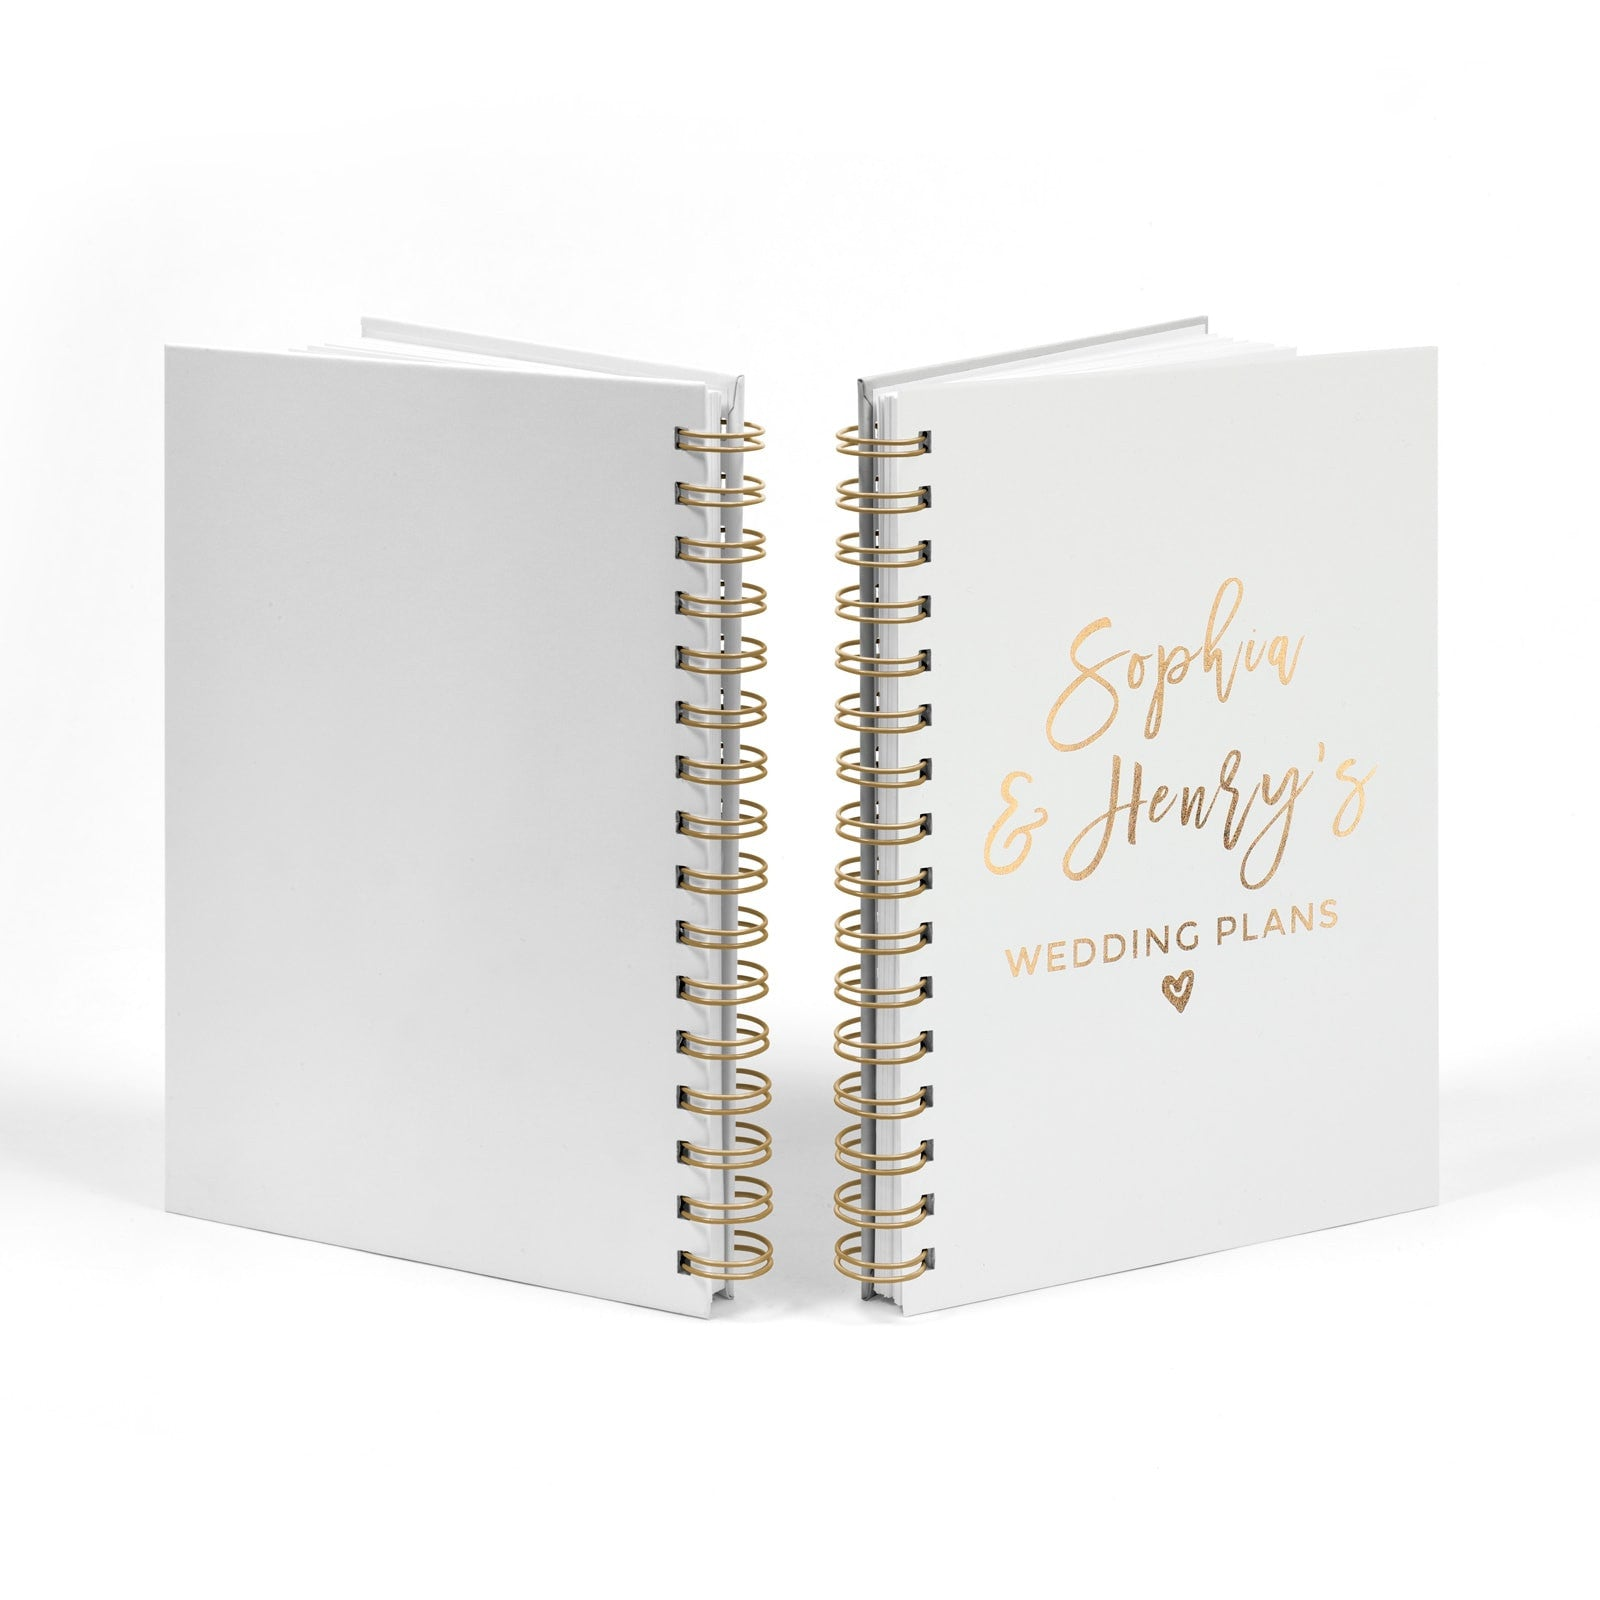 Personalised Copper Foil Wedding Plans Book Front & Back